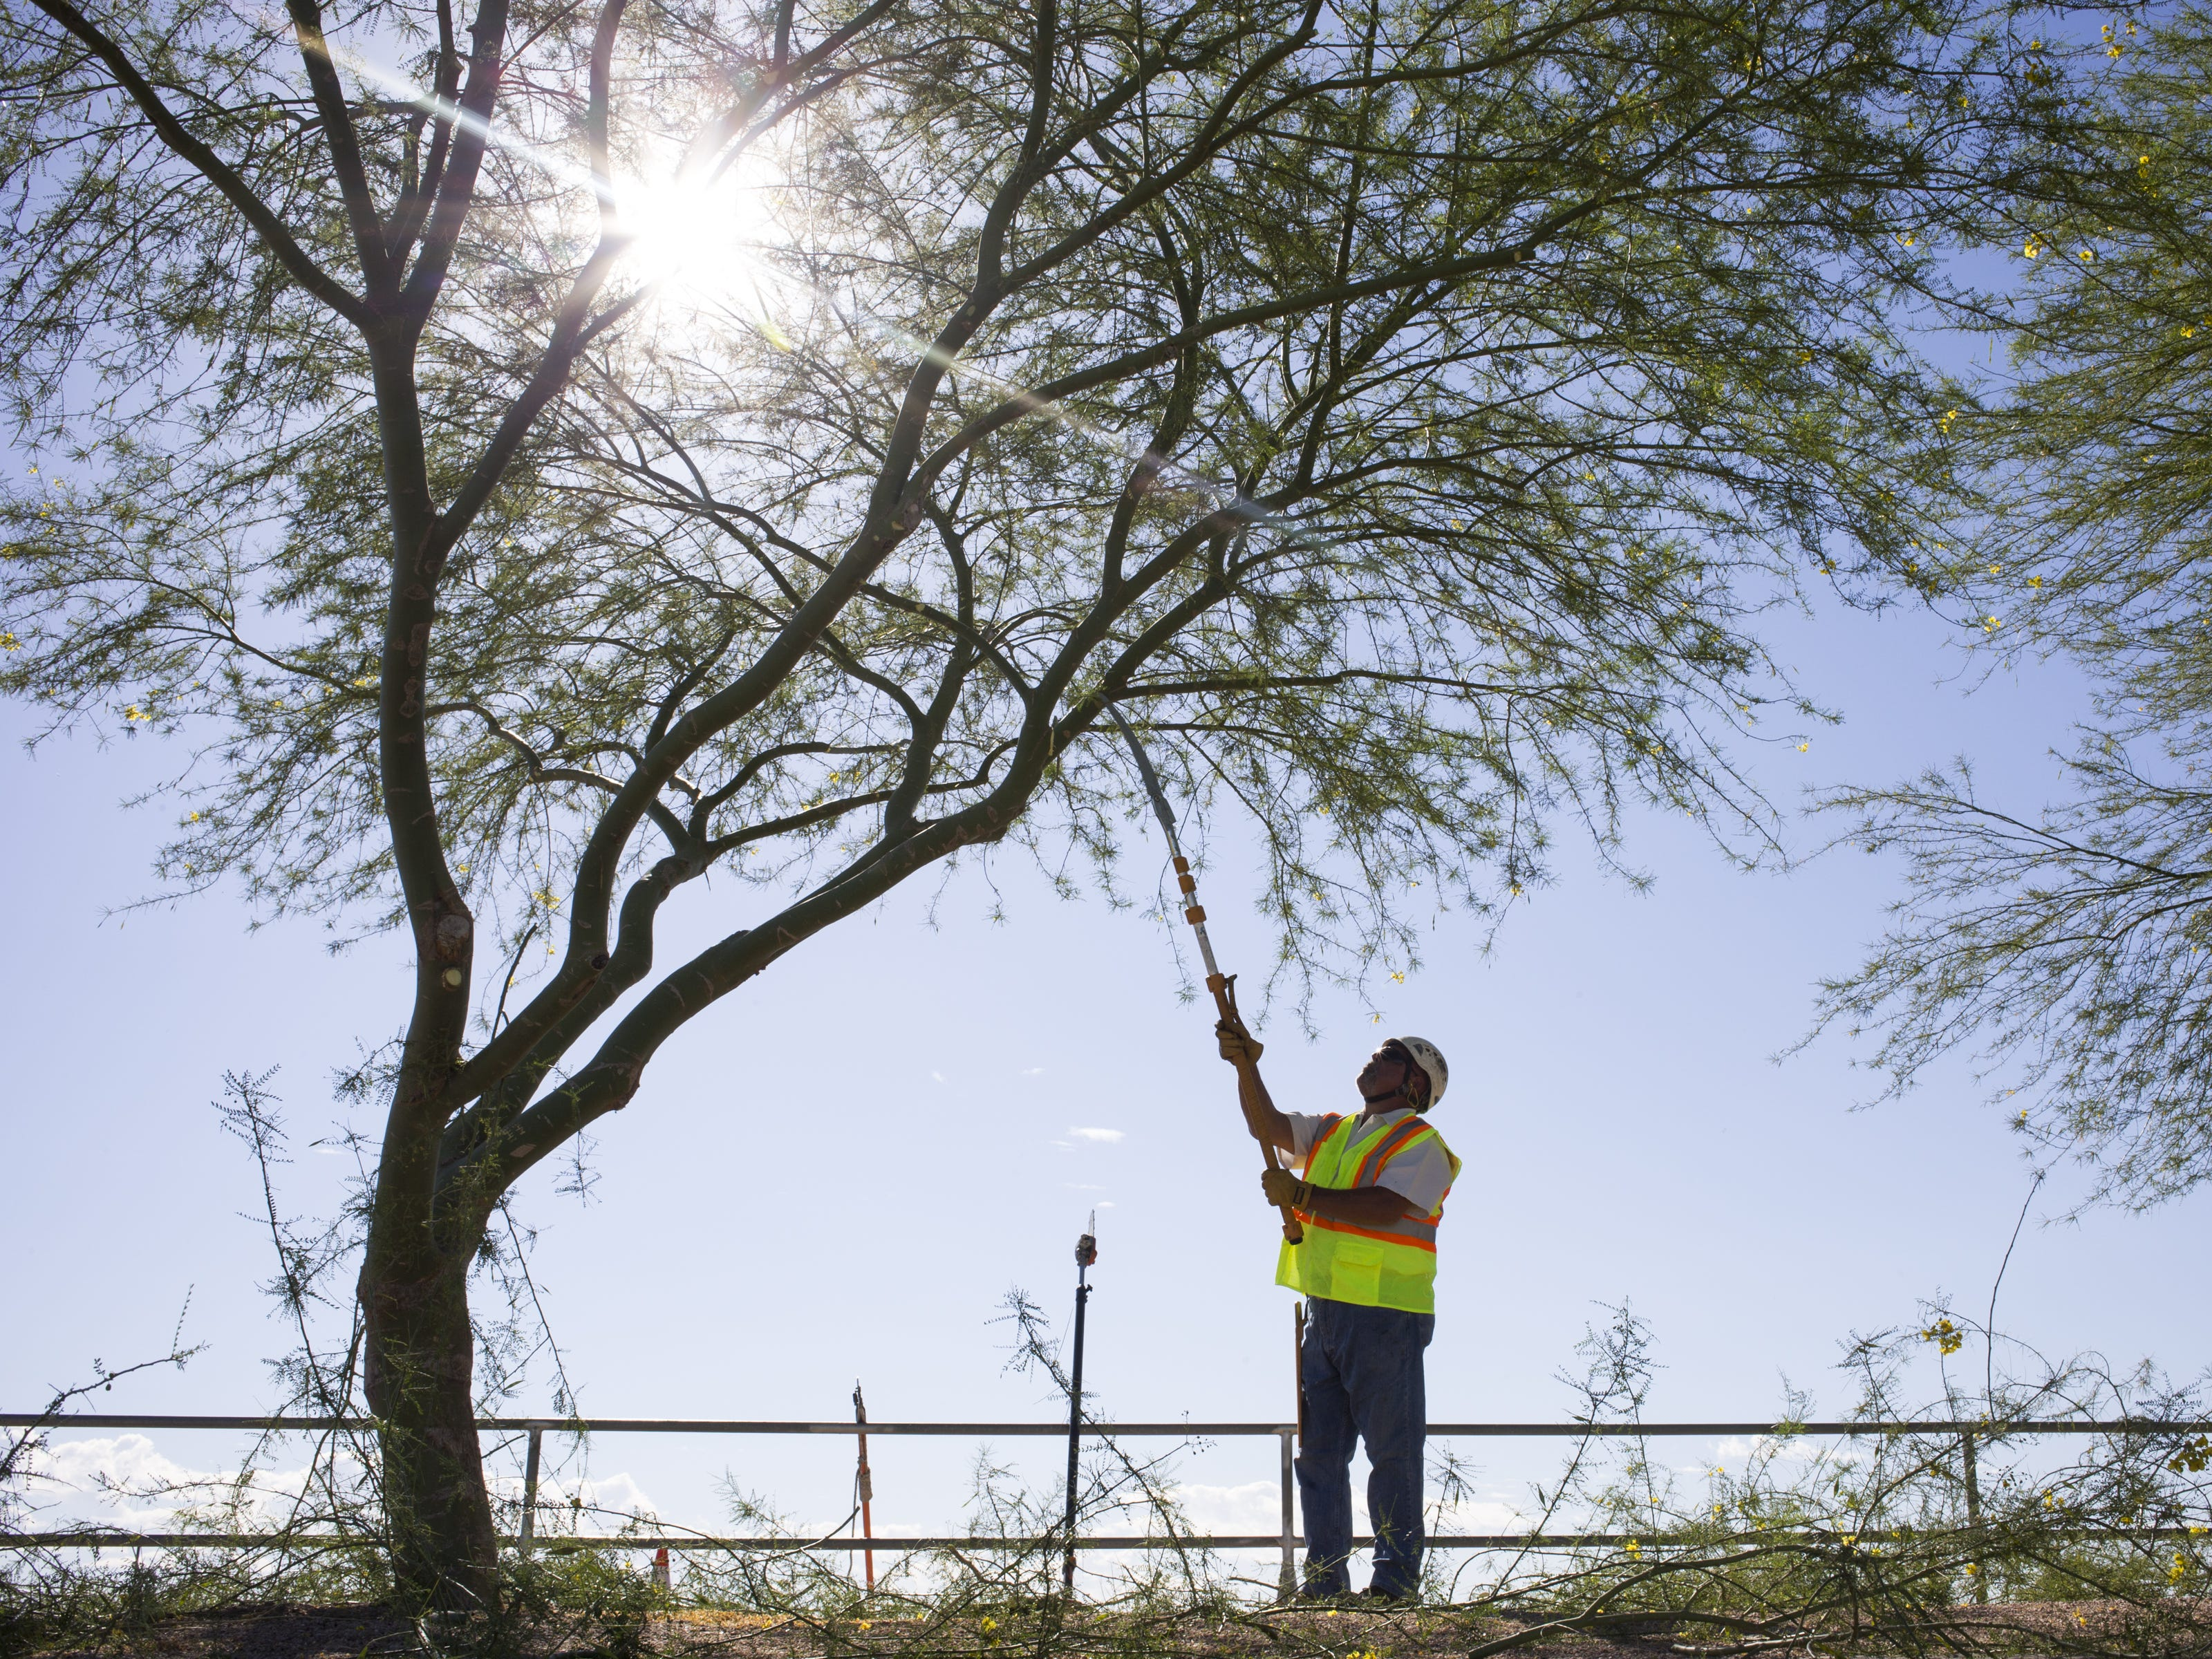 It can grow up to 30 feet while sipping water, making the Palo Verde the perfect tree for the desert, as well as Arizona's official state tree.